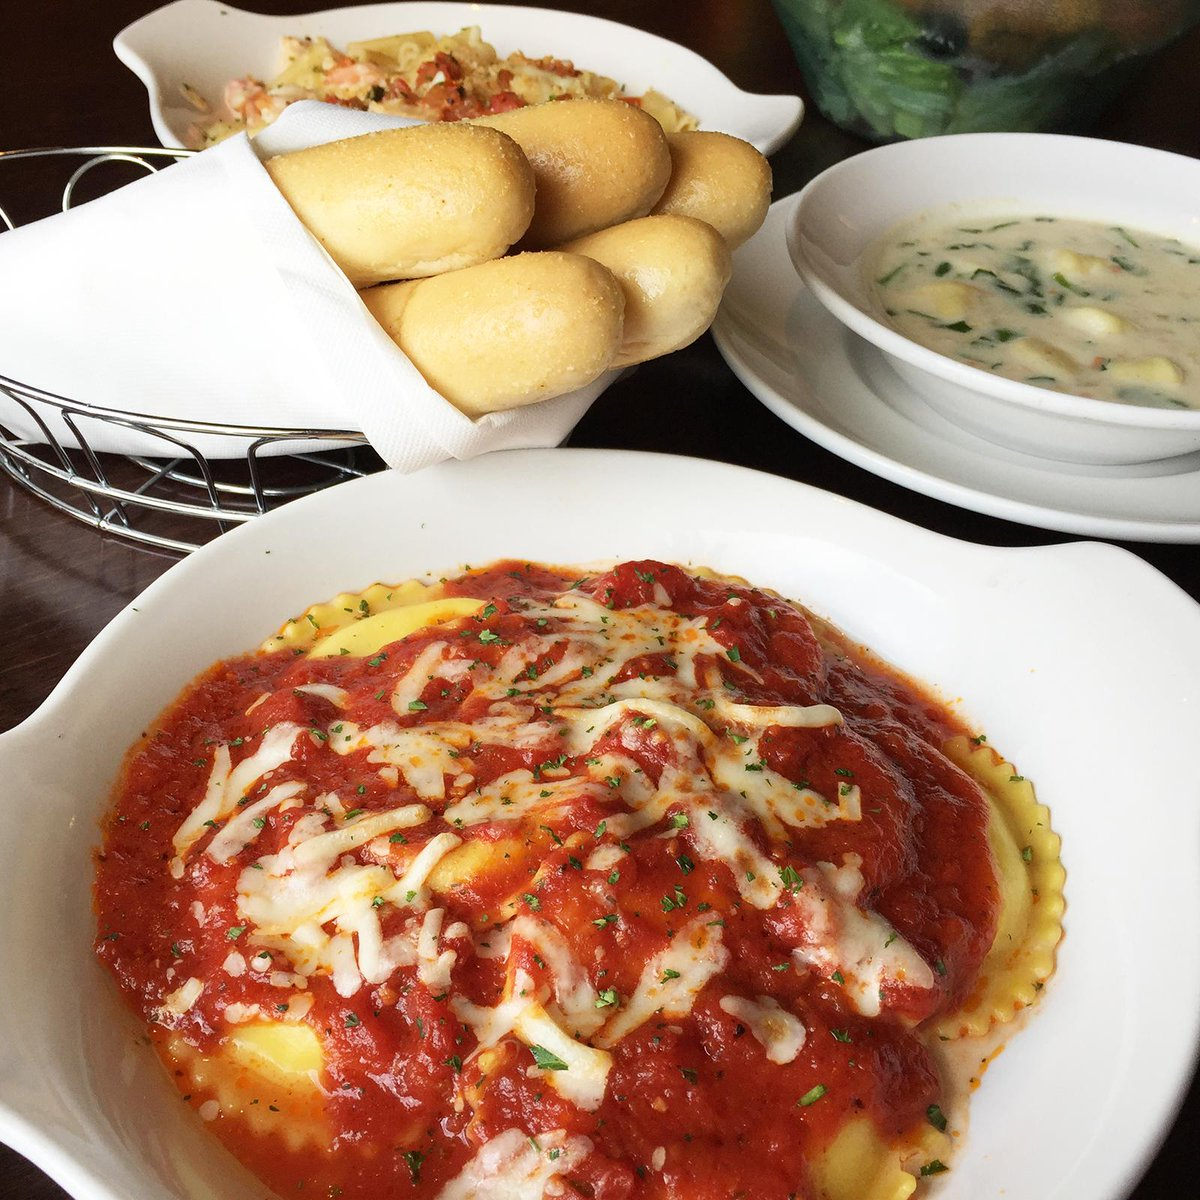 Olive garden on twitter mezzaluna ravioli with marinara sauce one for now and another for for Mezzaluna ravioli olive garden